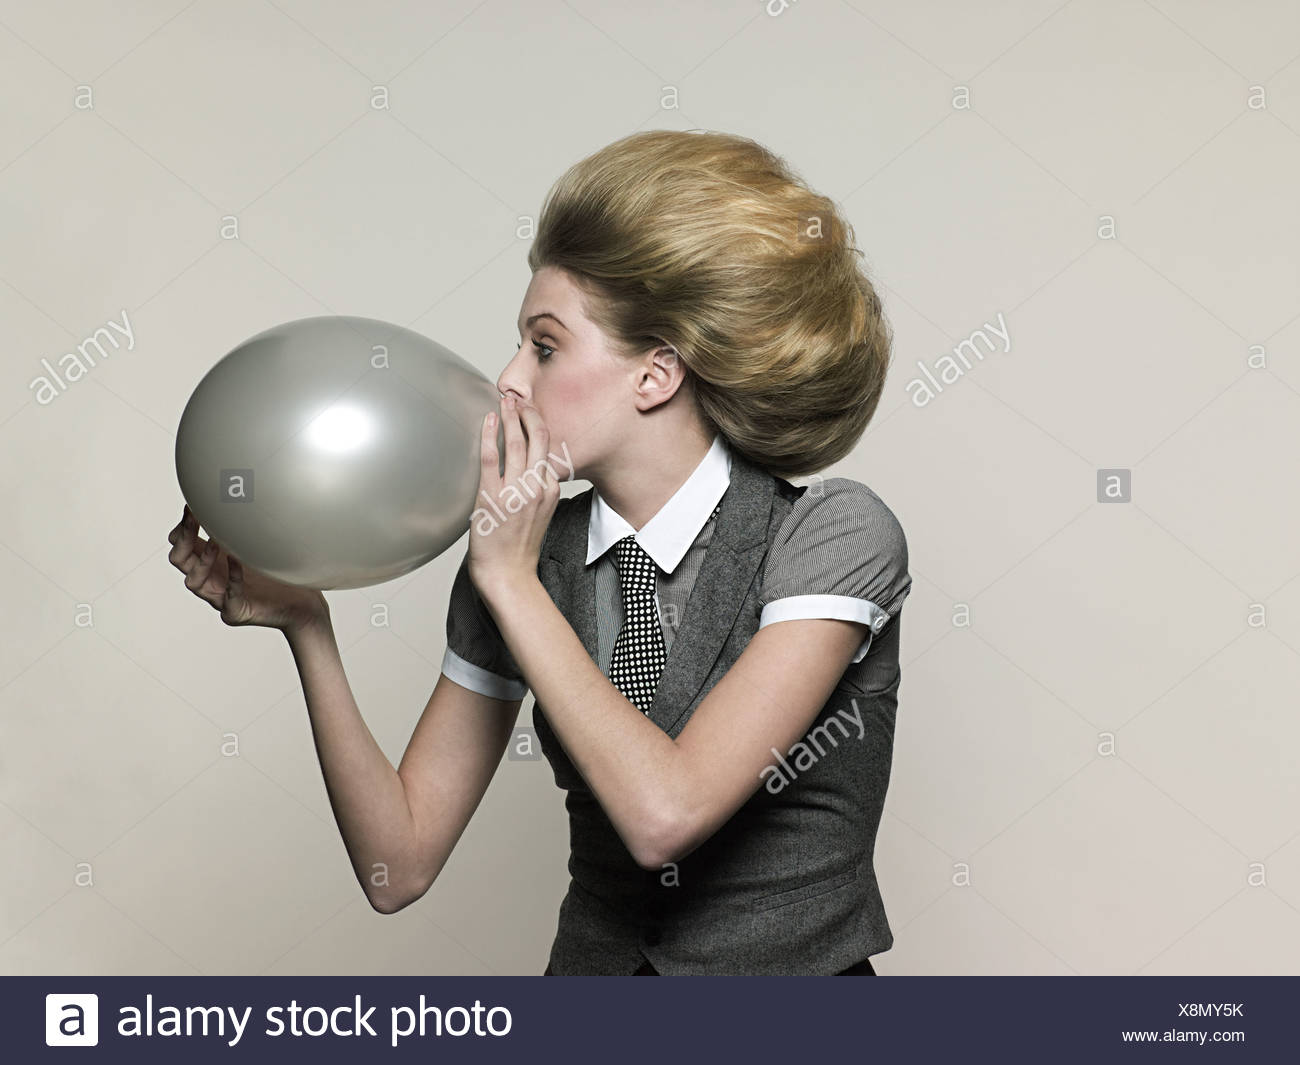 Businesswoman blowing balloon - Stock Image